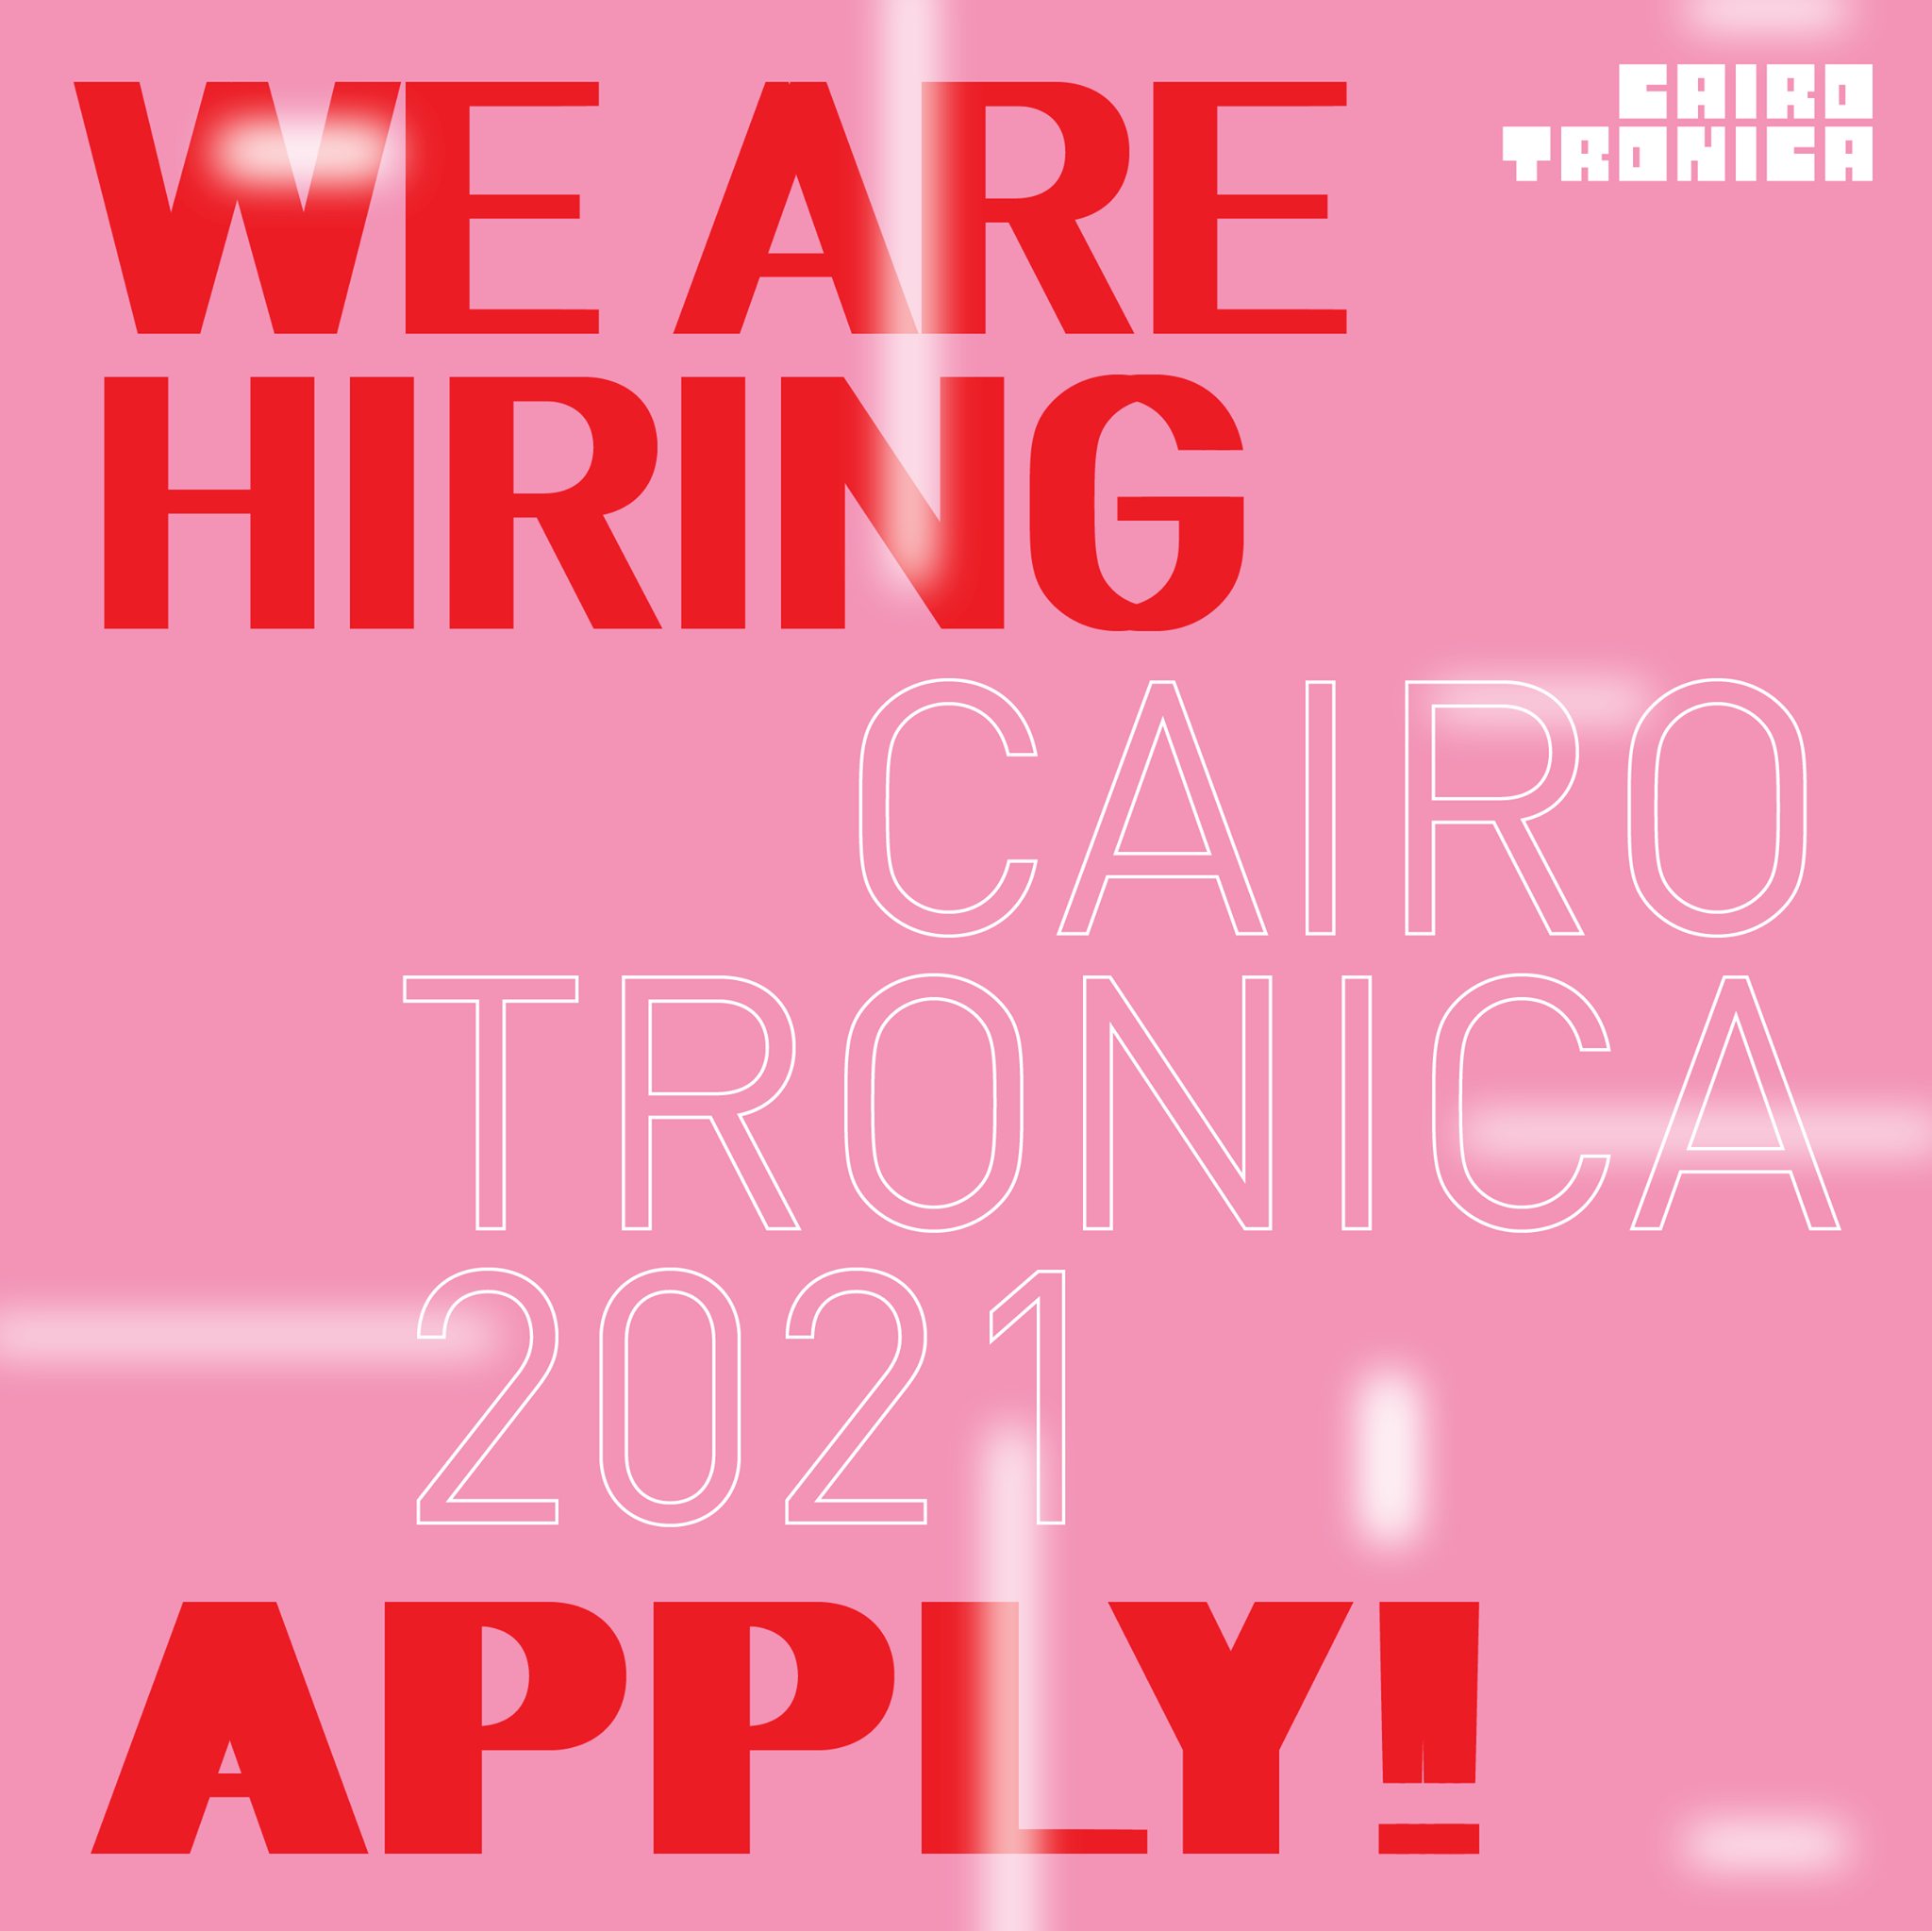 Cairotronica Production Manager